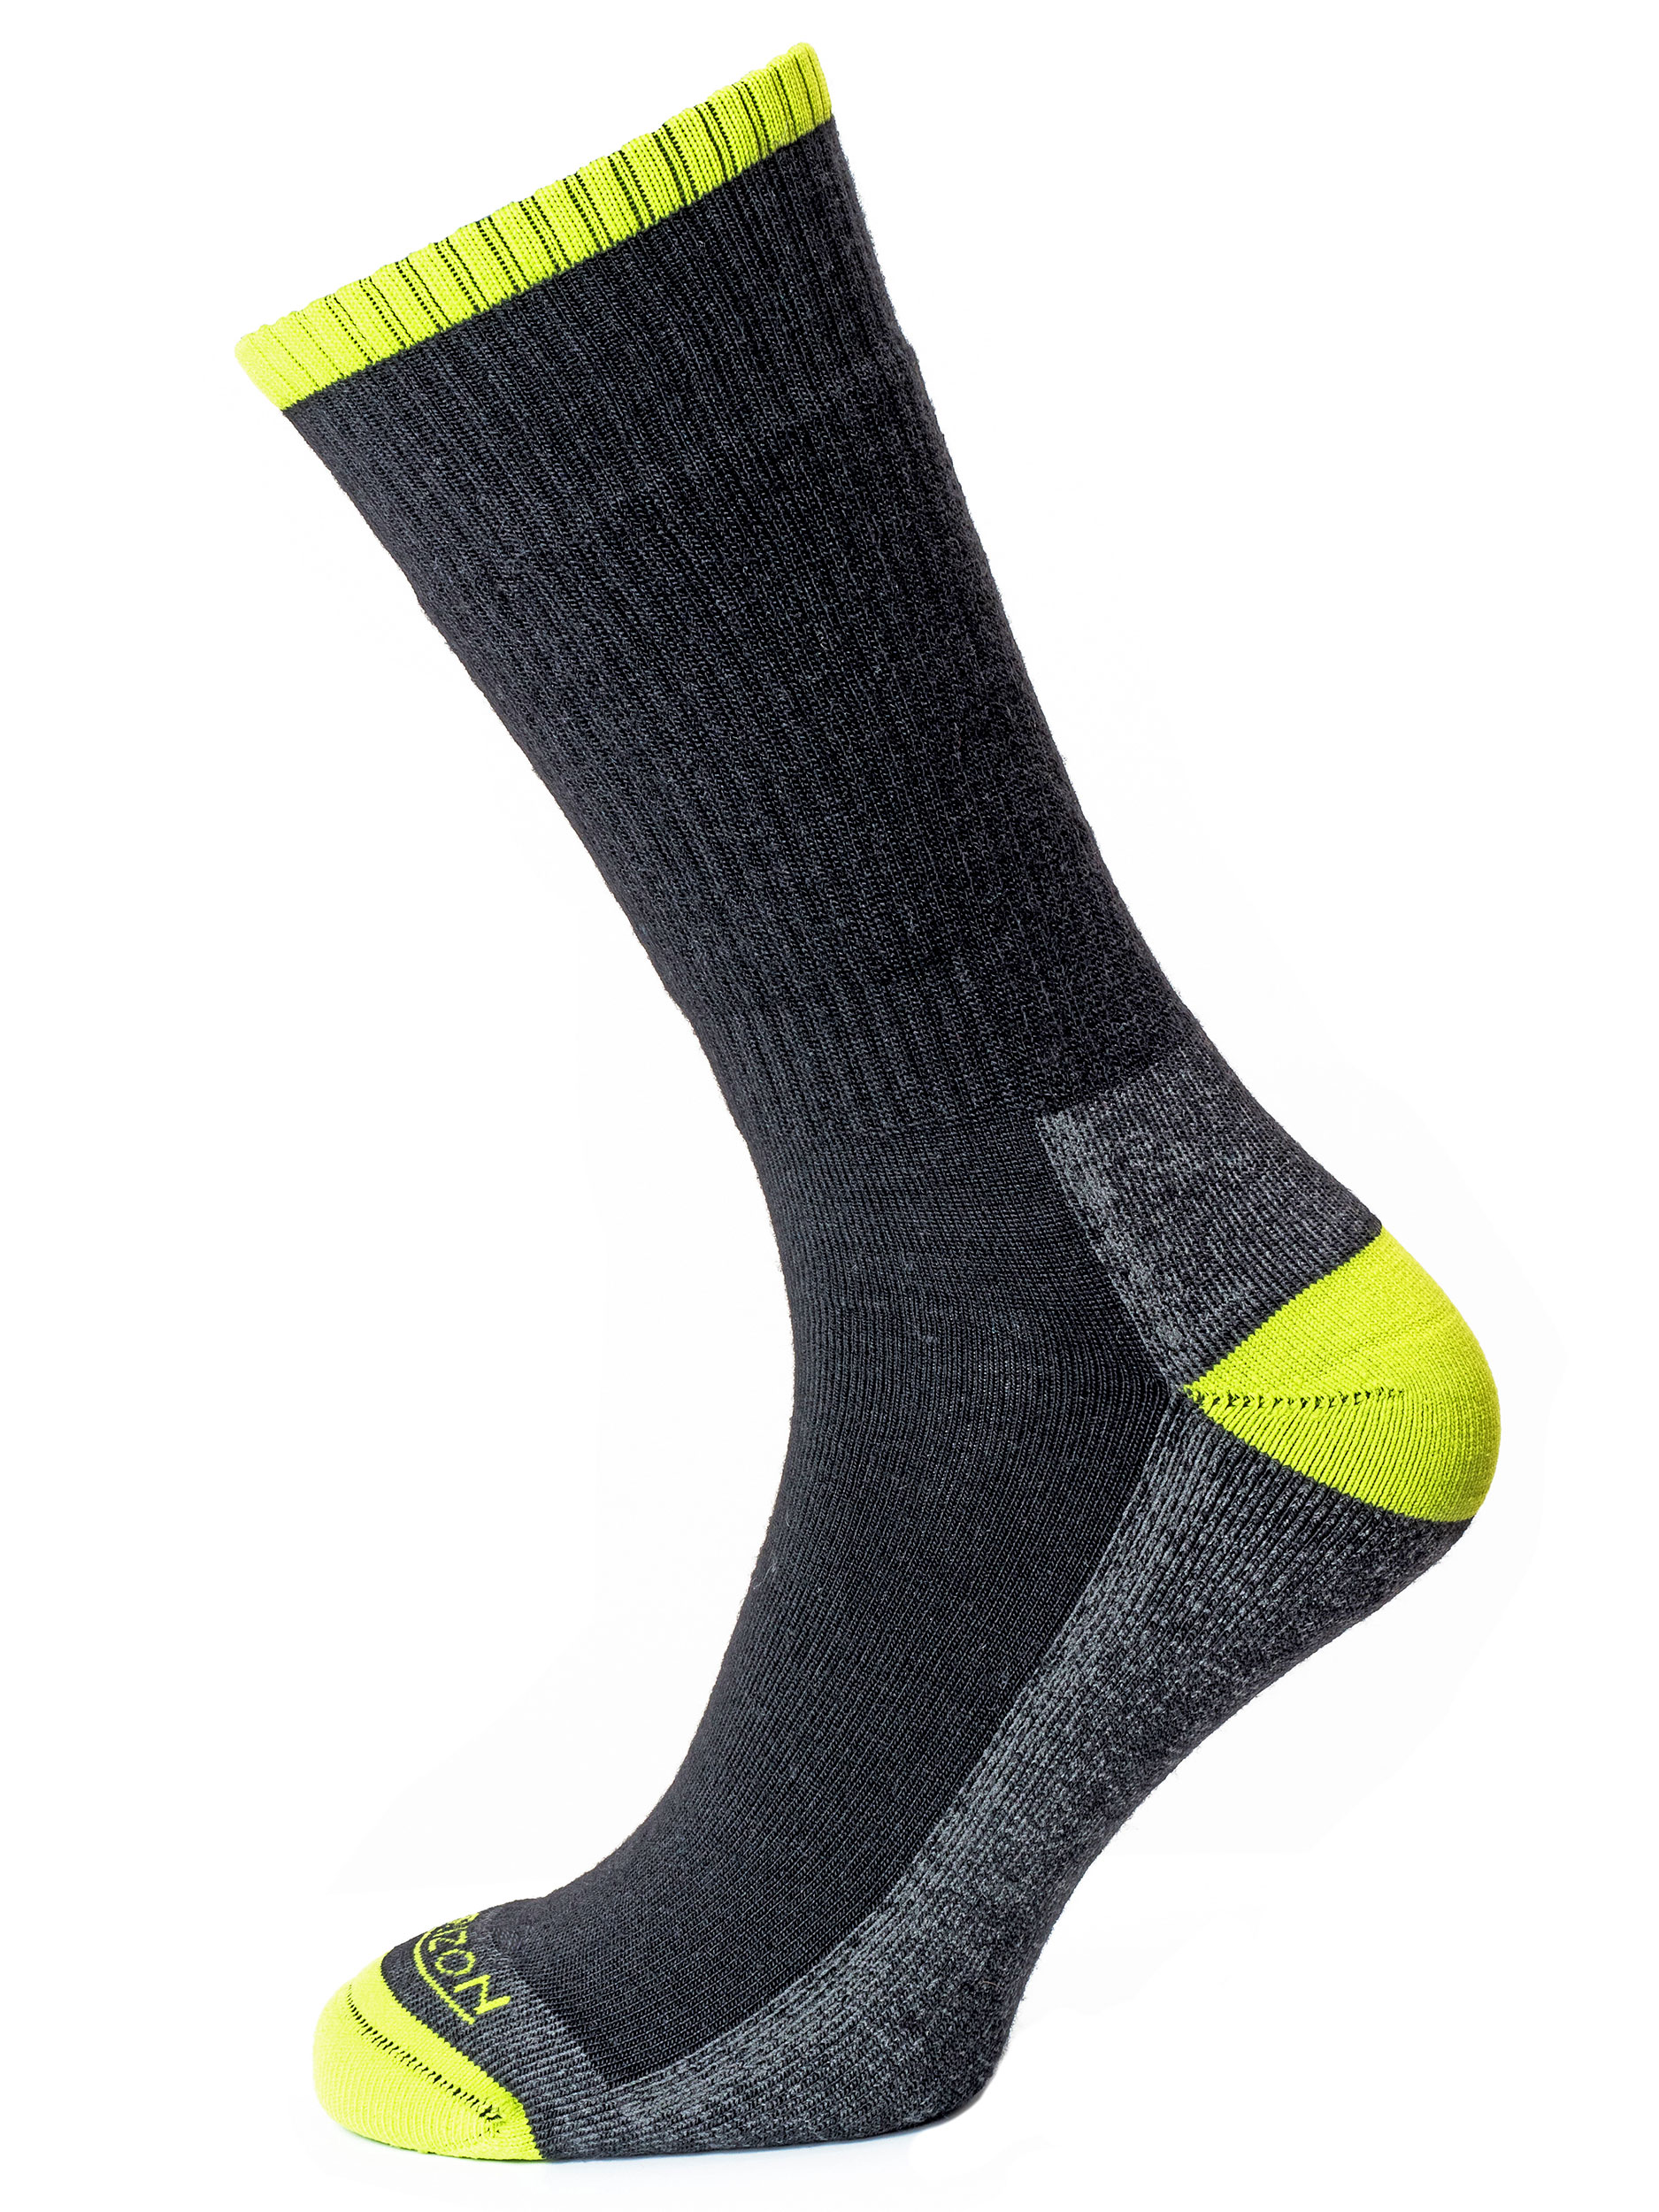 Merino Hike Anthracite Marl/Lime